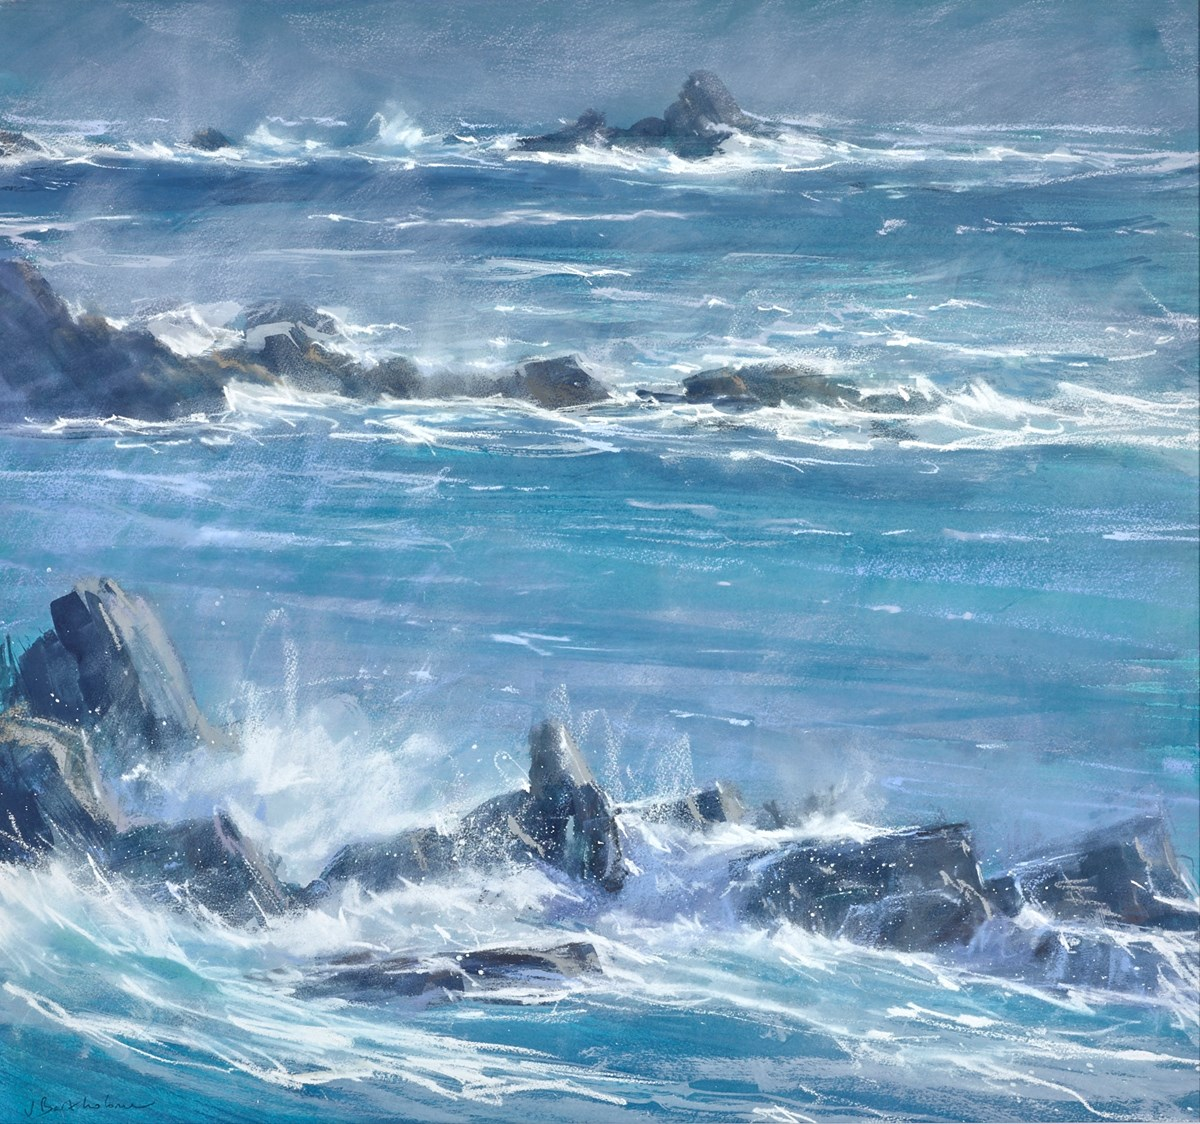 Battered Headlands, Land's End 2 by james bartholomew -  sized 31x29 inches. Available from Whitewall Galleries